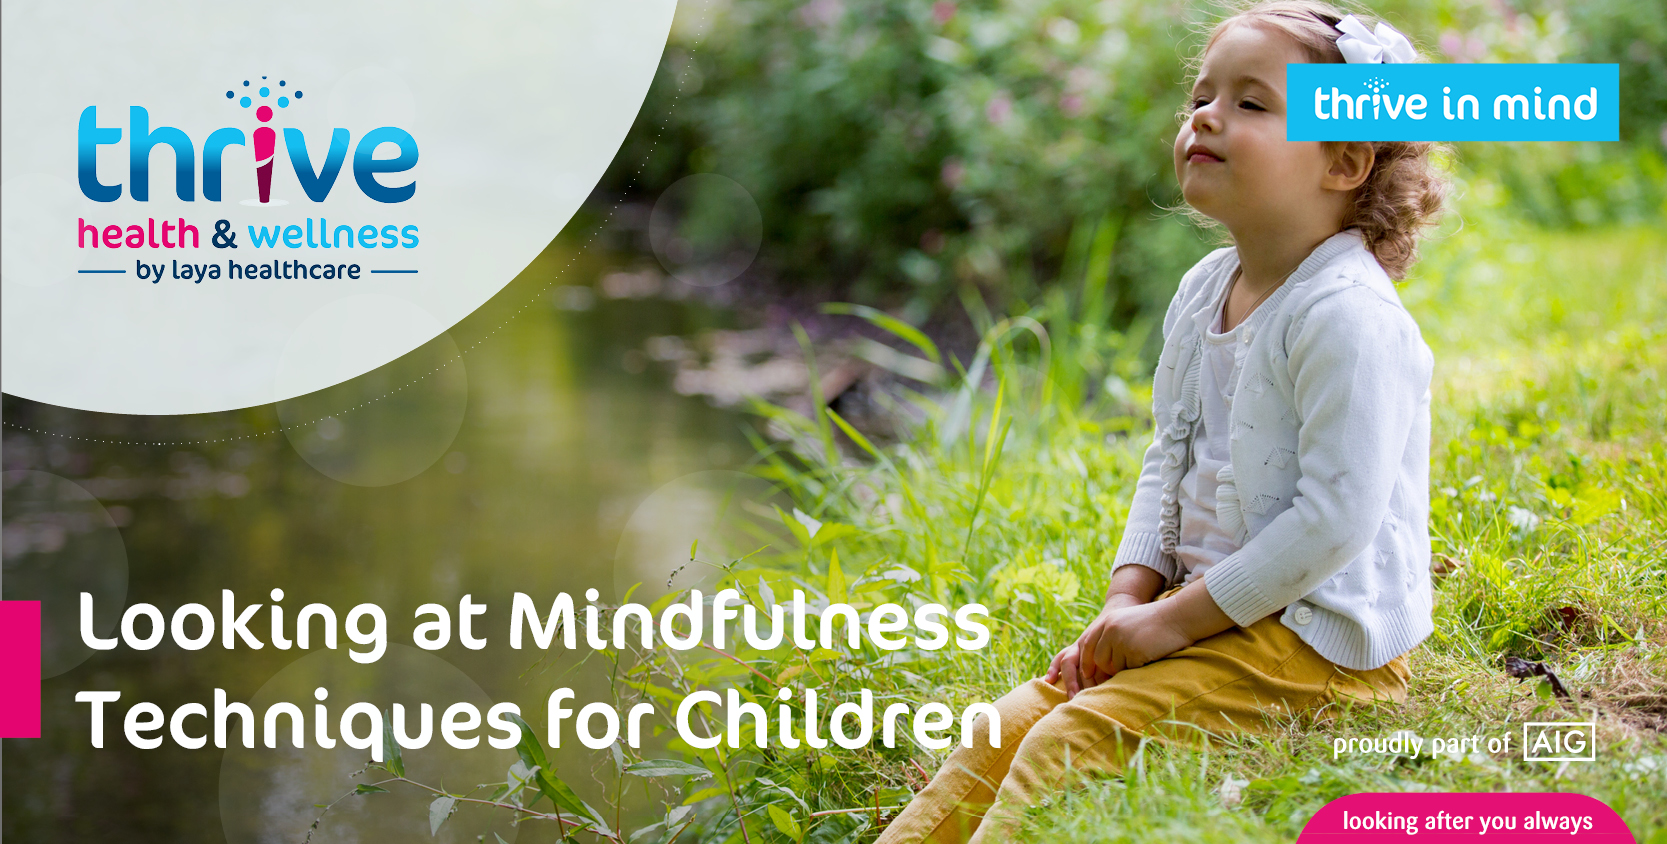 MAILCHIMP TEMPLATE. Looking at Mindfulness Techniques for Children.jpg